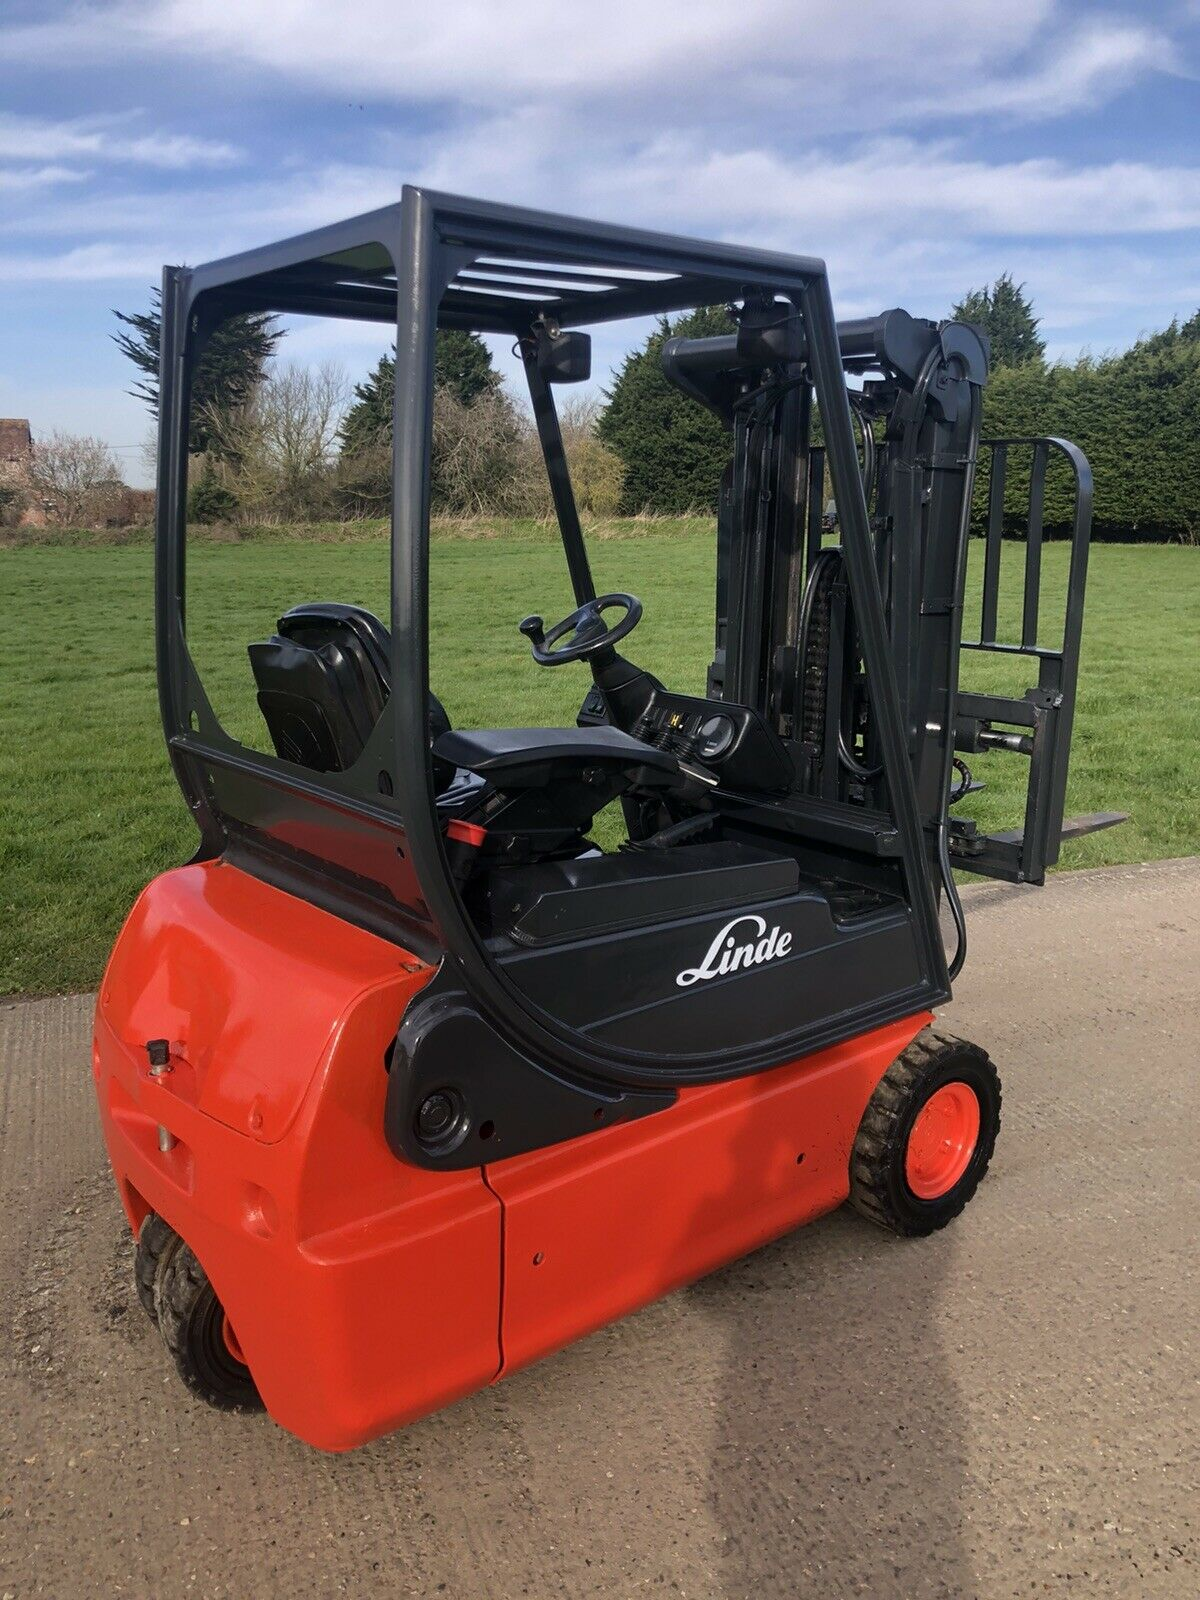 Linde Electric Forklift Truck E16 - Image 2 of 4